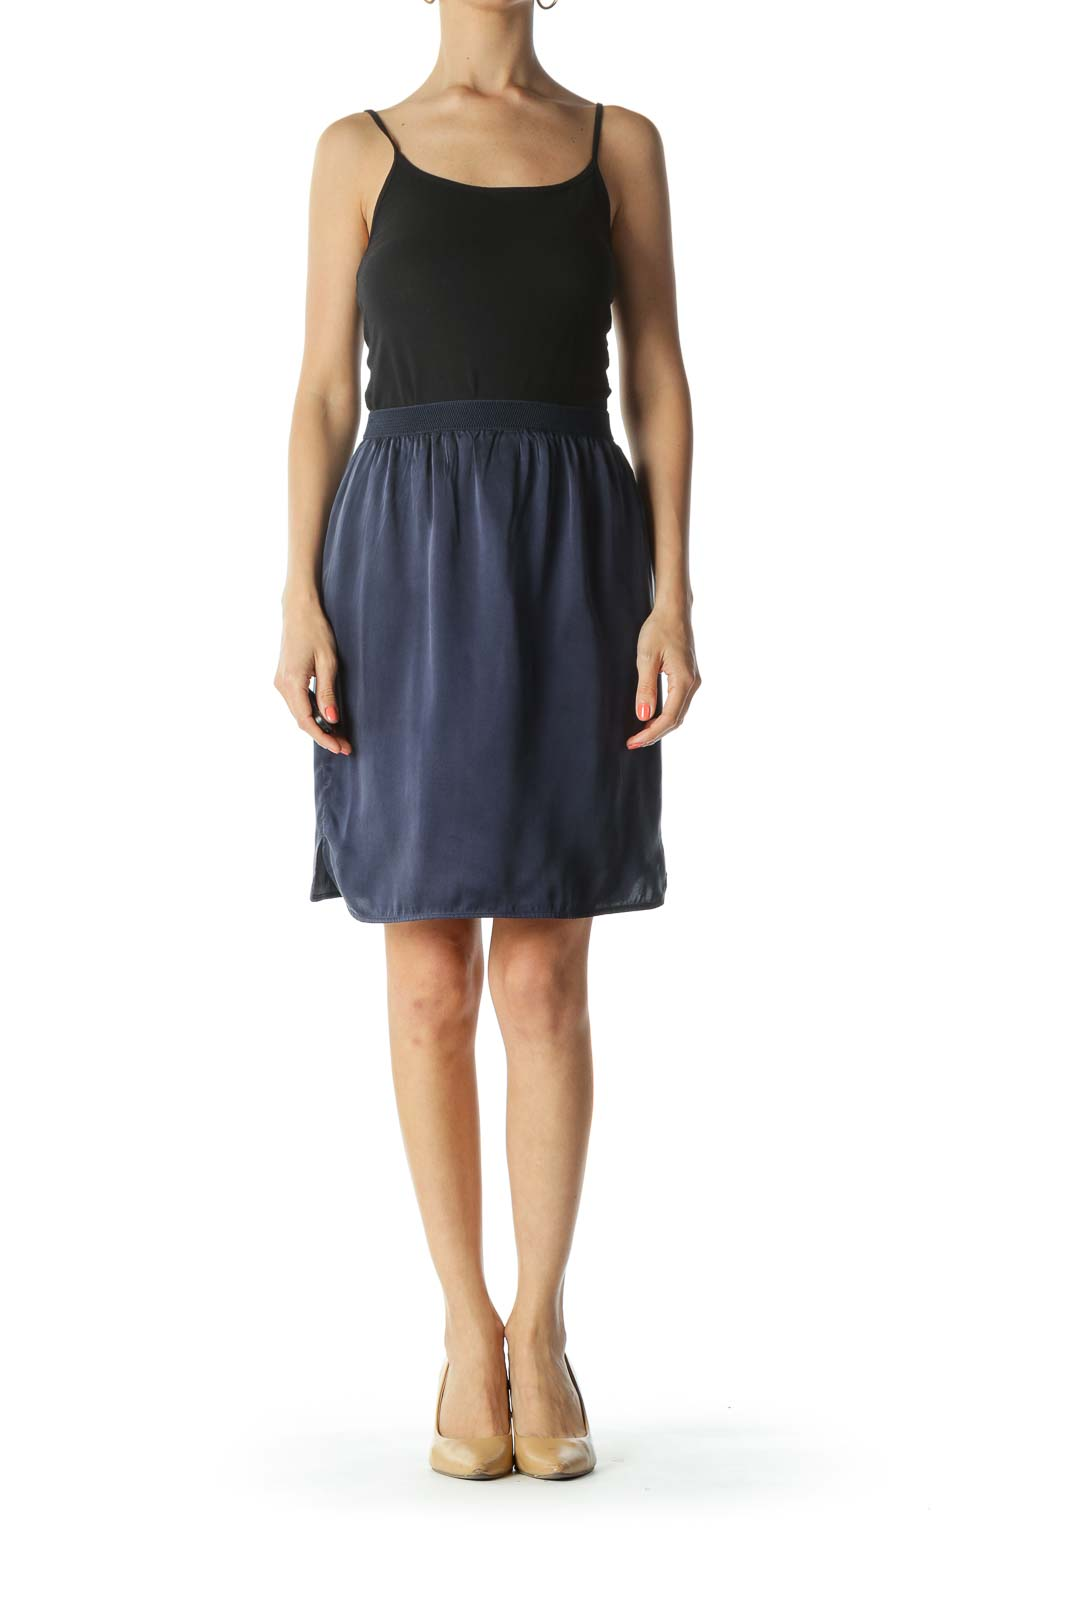 Navy-Blue Silk Textured-Elastic-Waist Lined Mini-Leg-Slit Skirt